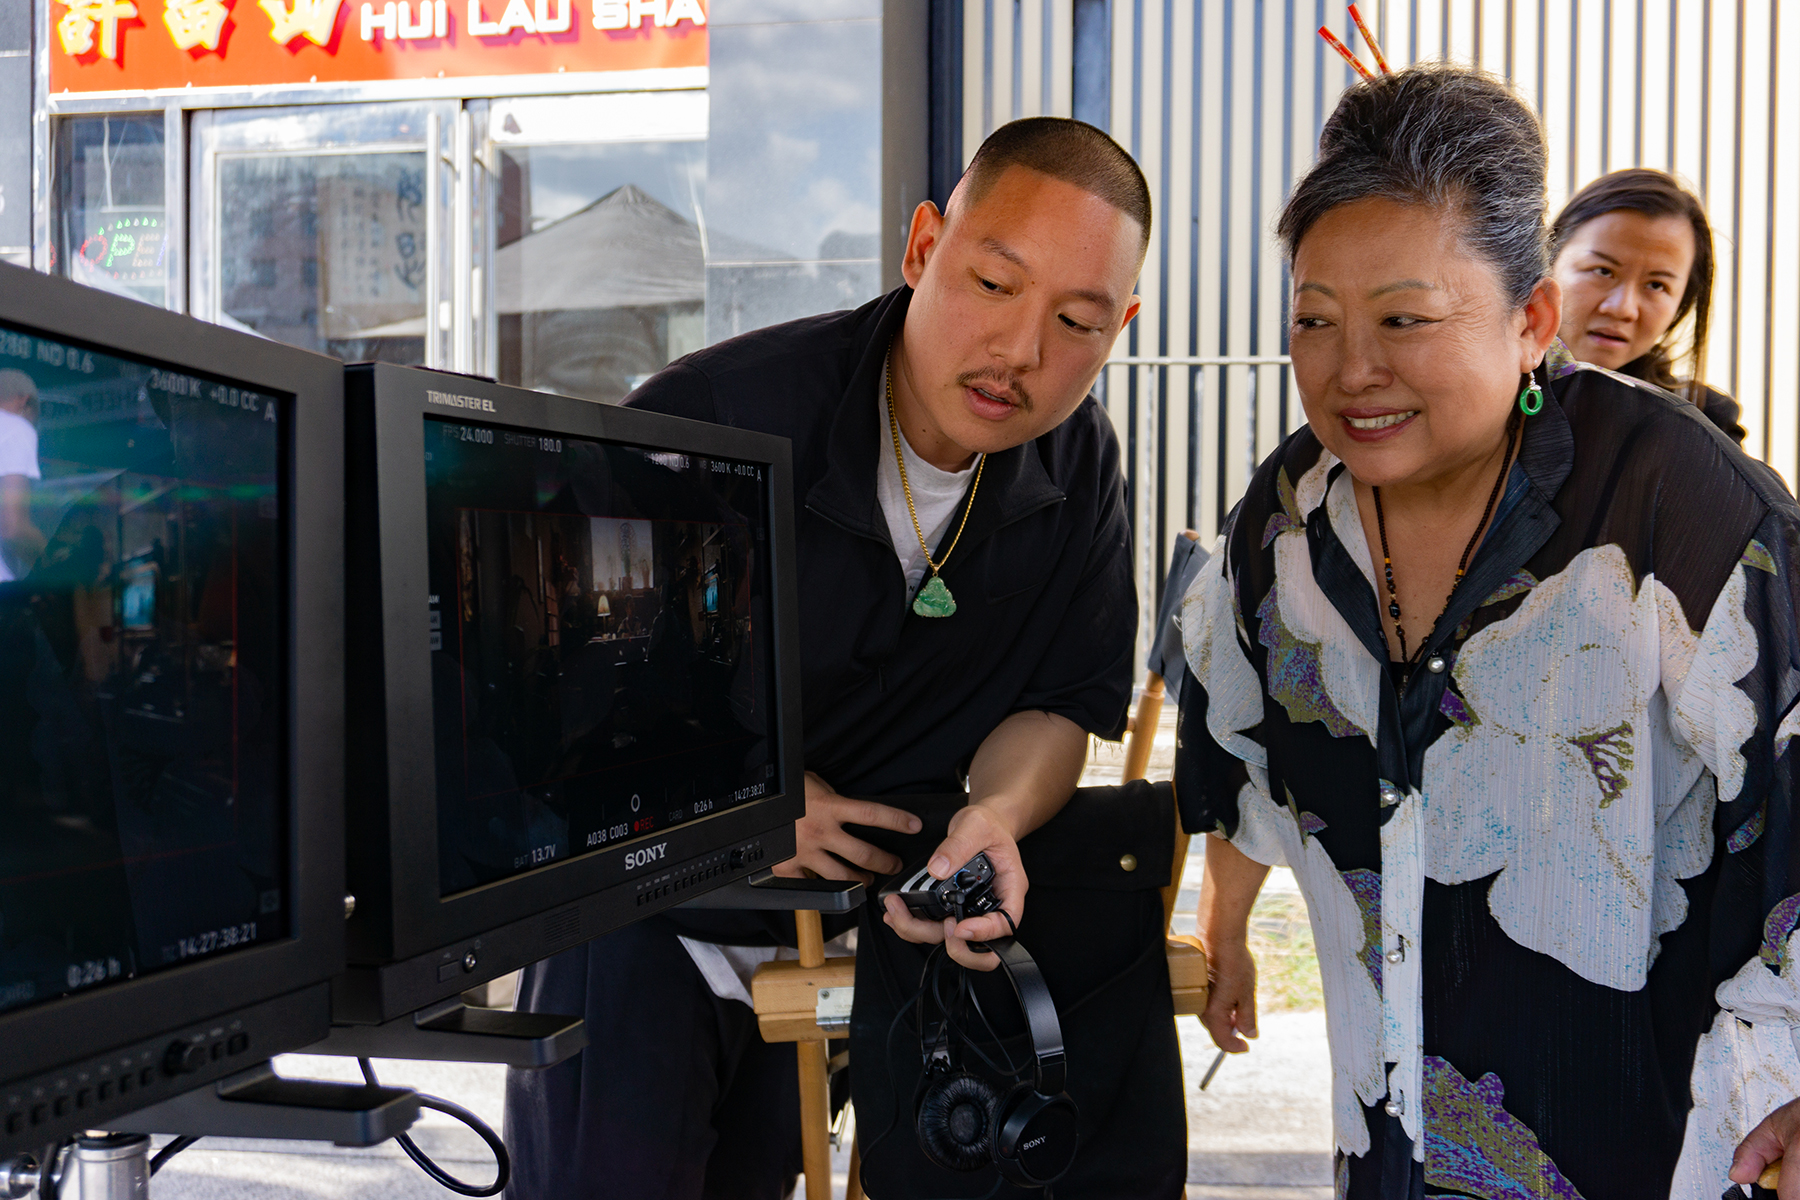 4153_D008_00521_RCWriter/director/actor Eddie Huang and his mom, actress Jessica Huang on the set of their film BOOGIE, a Focus Features release. Credit: Nicole Rivelli / Focus Features